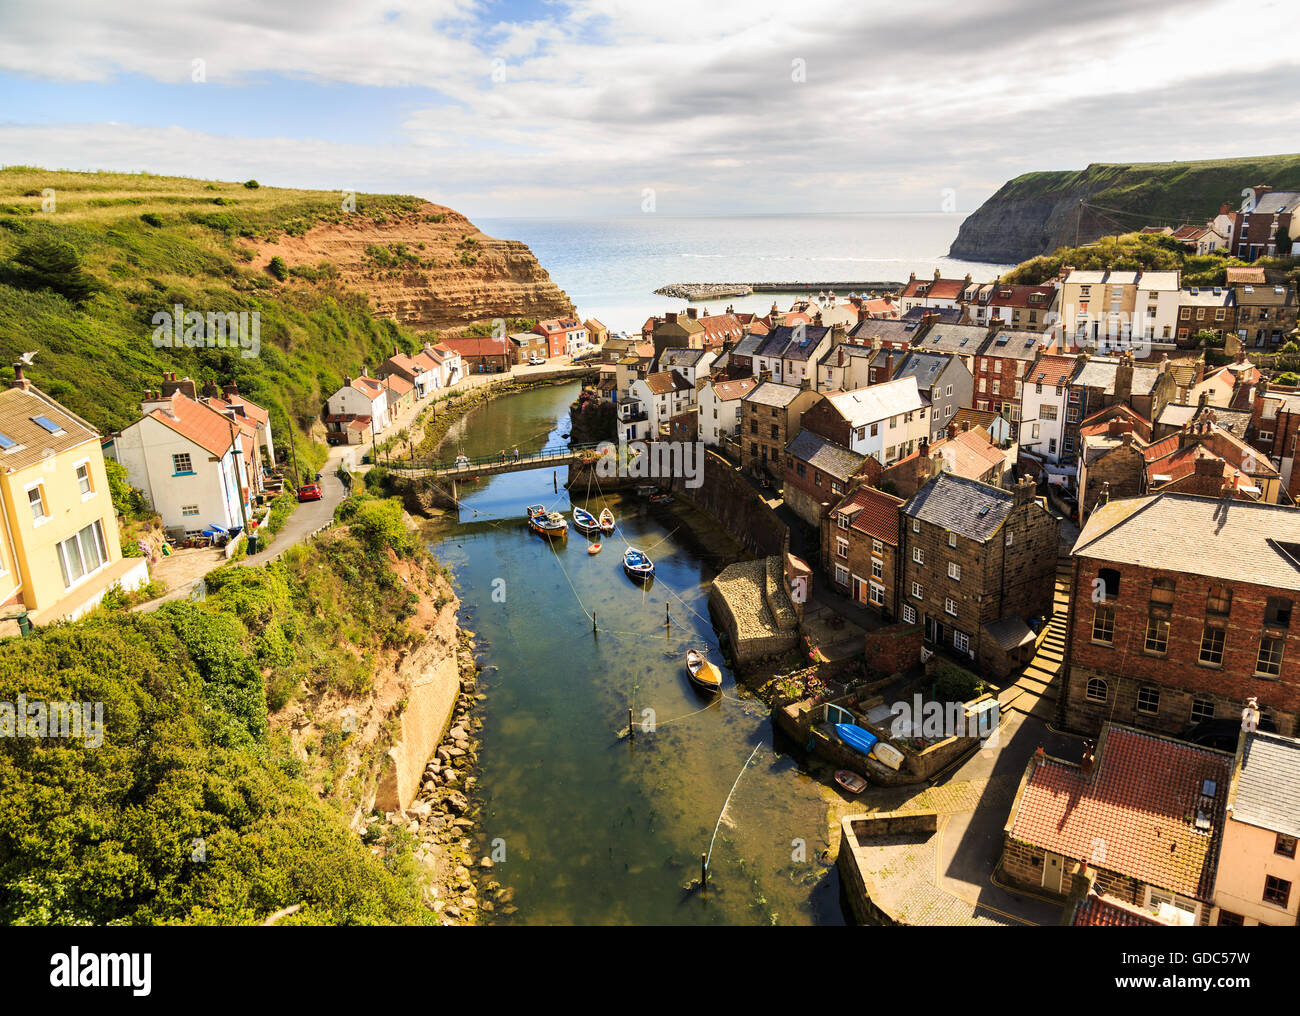 View of Staithes, from a high viewpoint, showing the beck and the town. - Stock Image